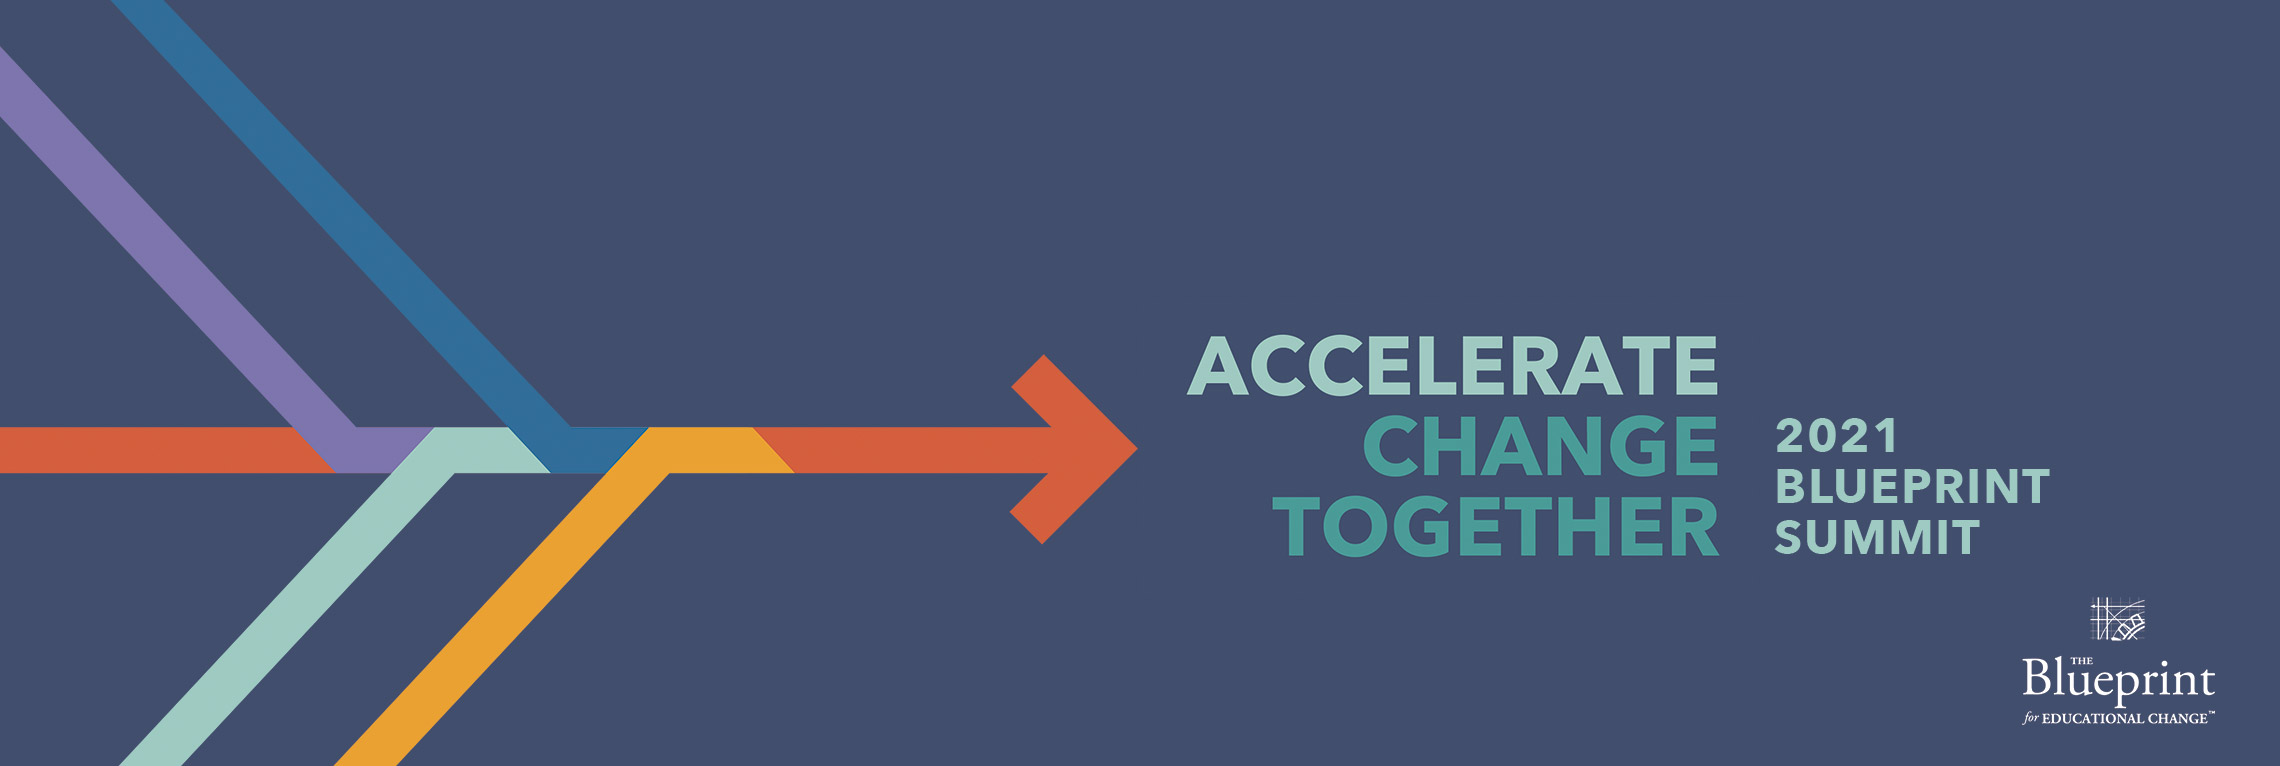 Accelerate Change Together 2021 Blueprint Summit